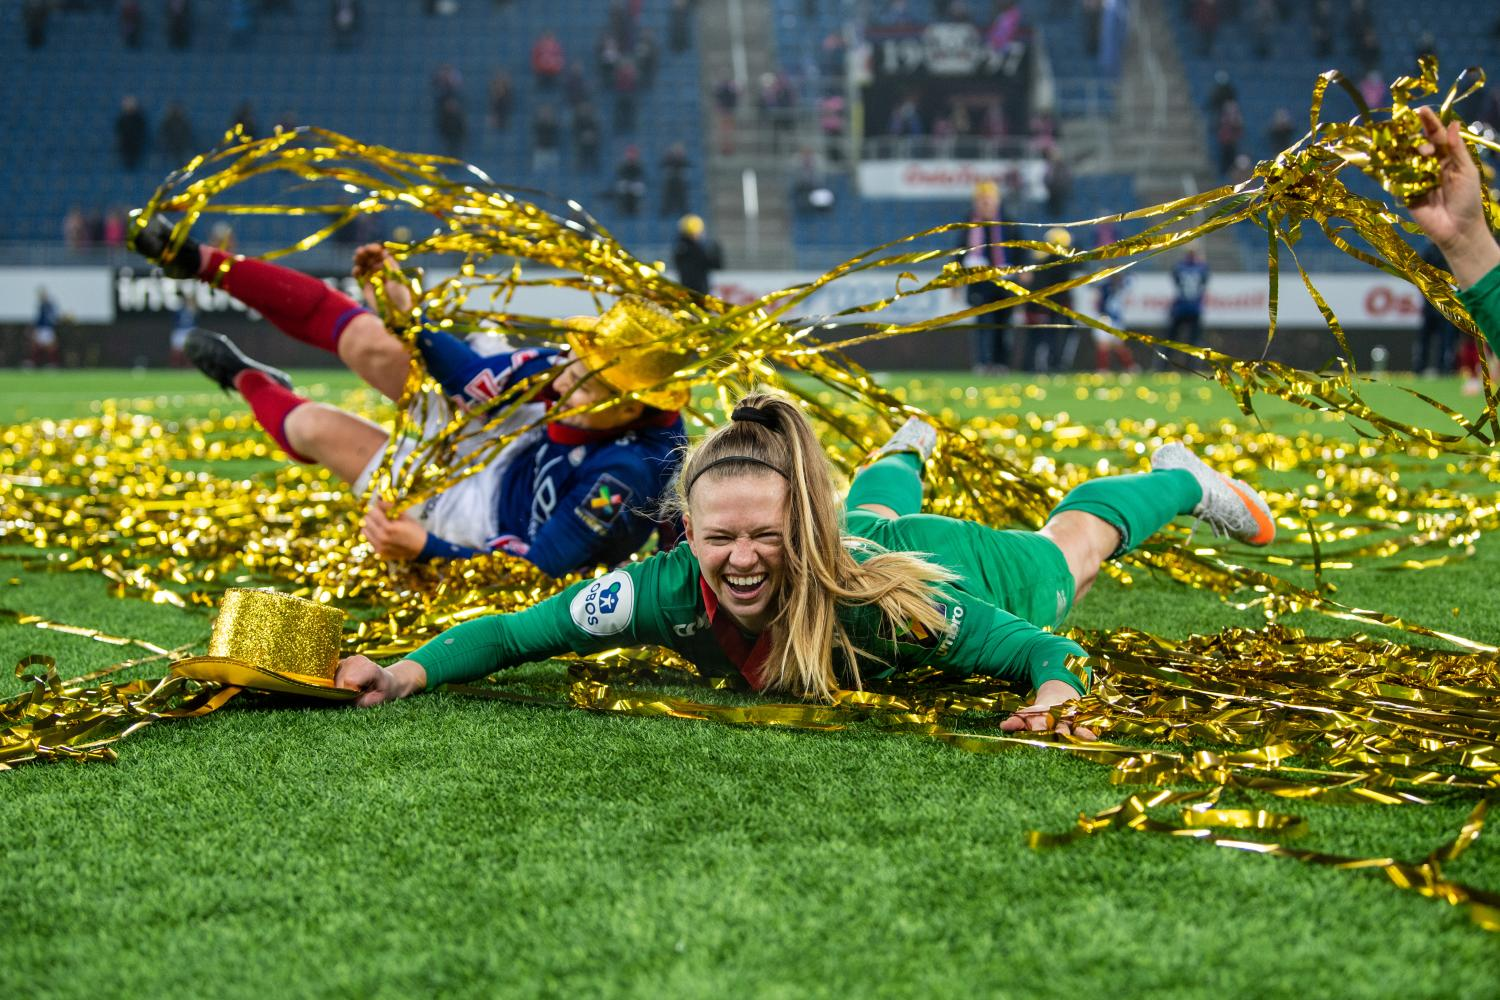 soccer goalie J.J. Tompkins celebrates on the field surrounded by gold streamers